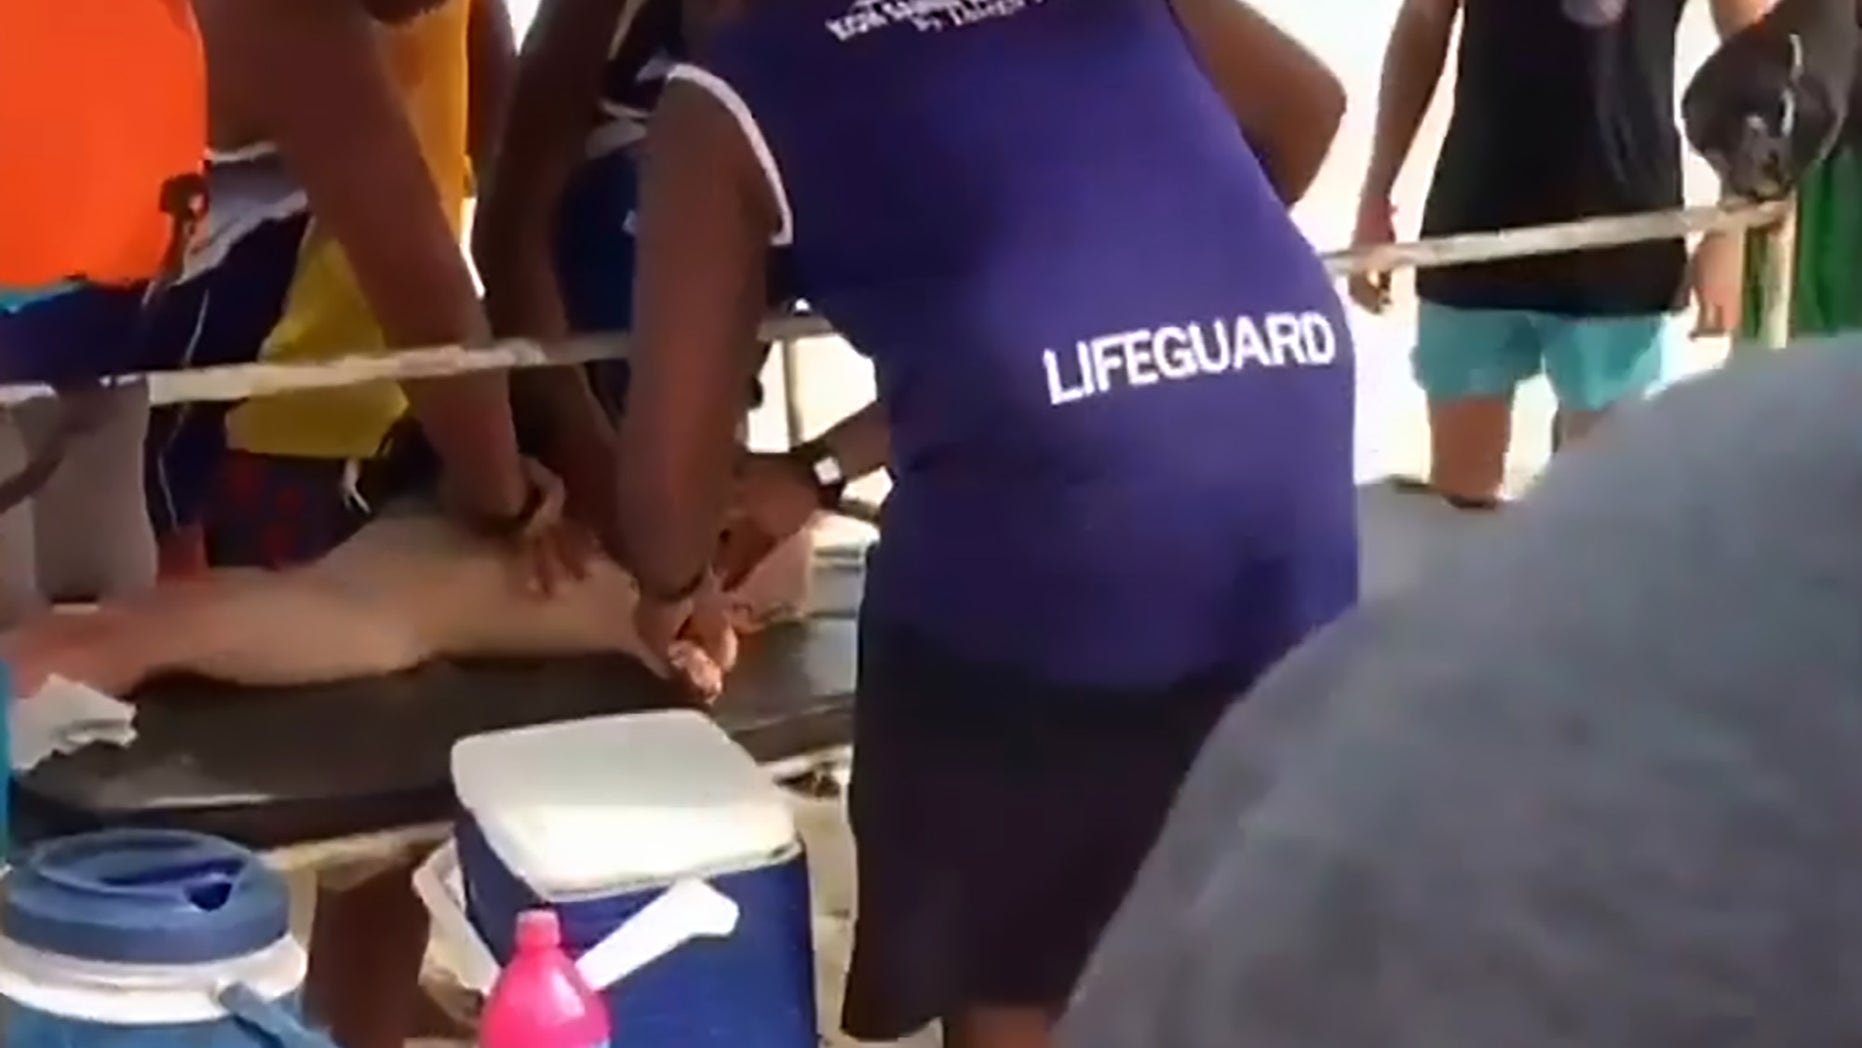 Pic shows: boy being attended by paramedics;